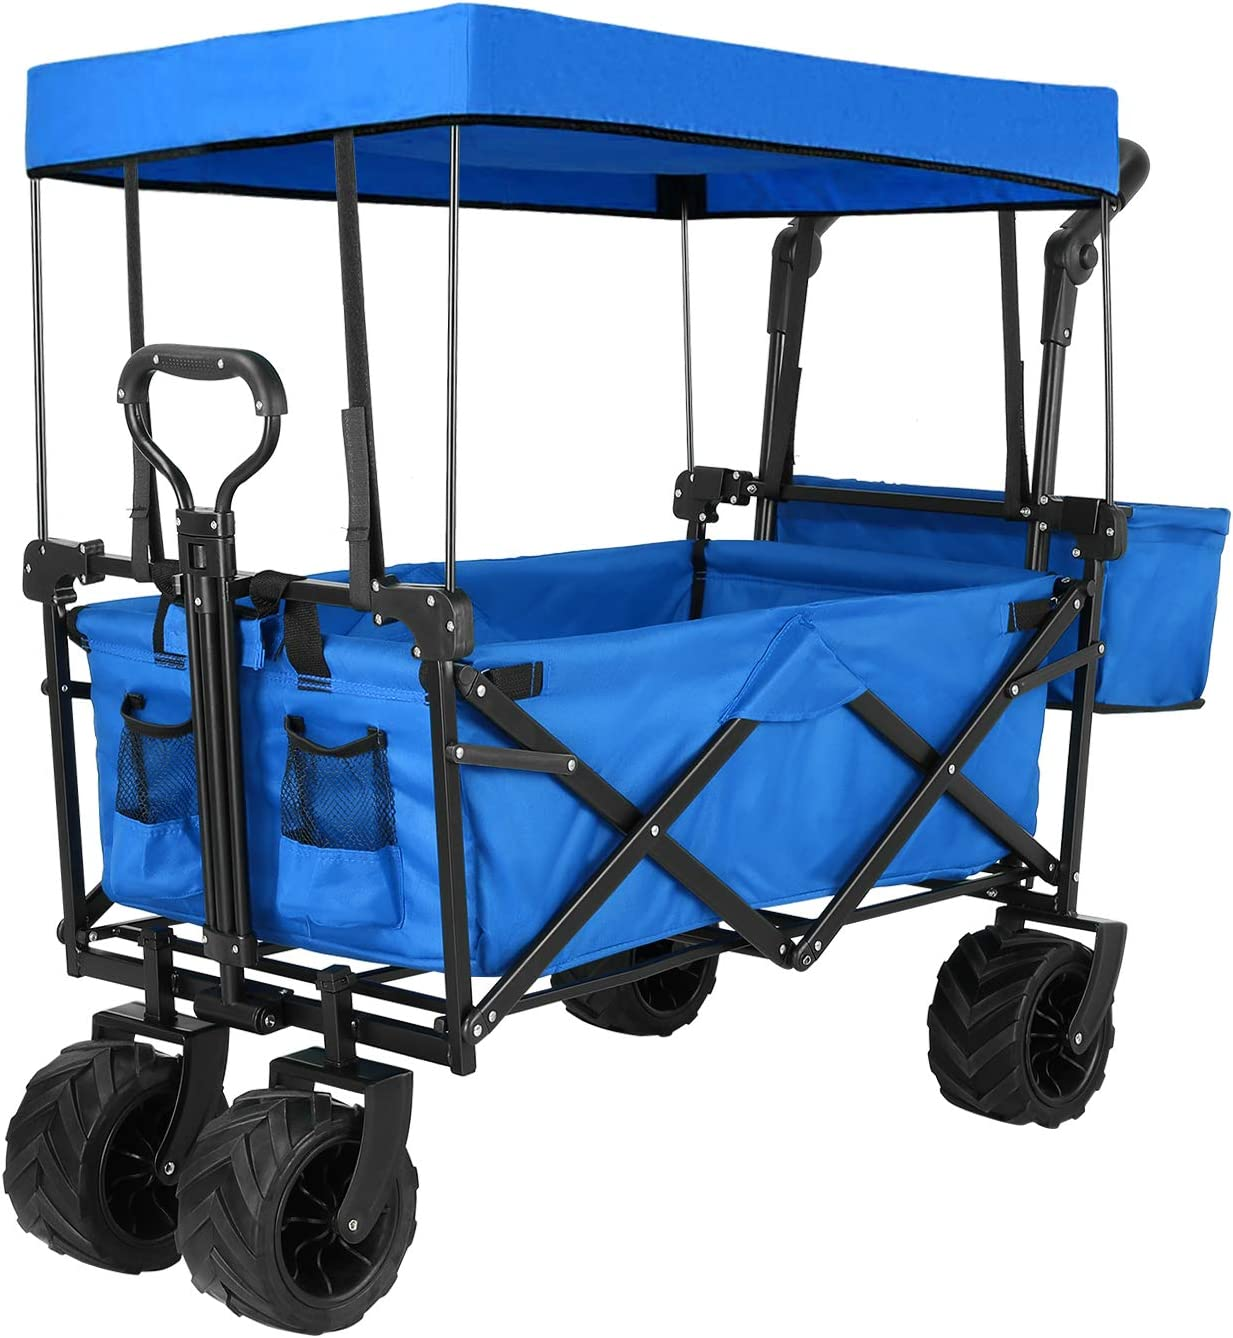 Snan Push and Pull Collapsible Wagon